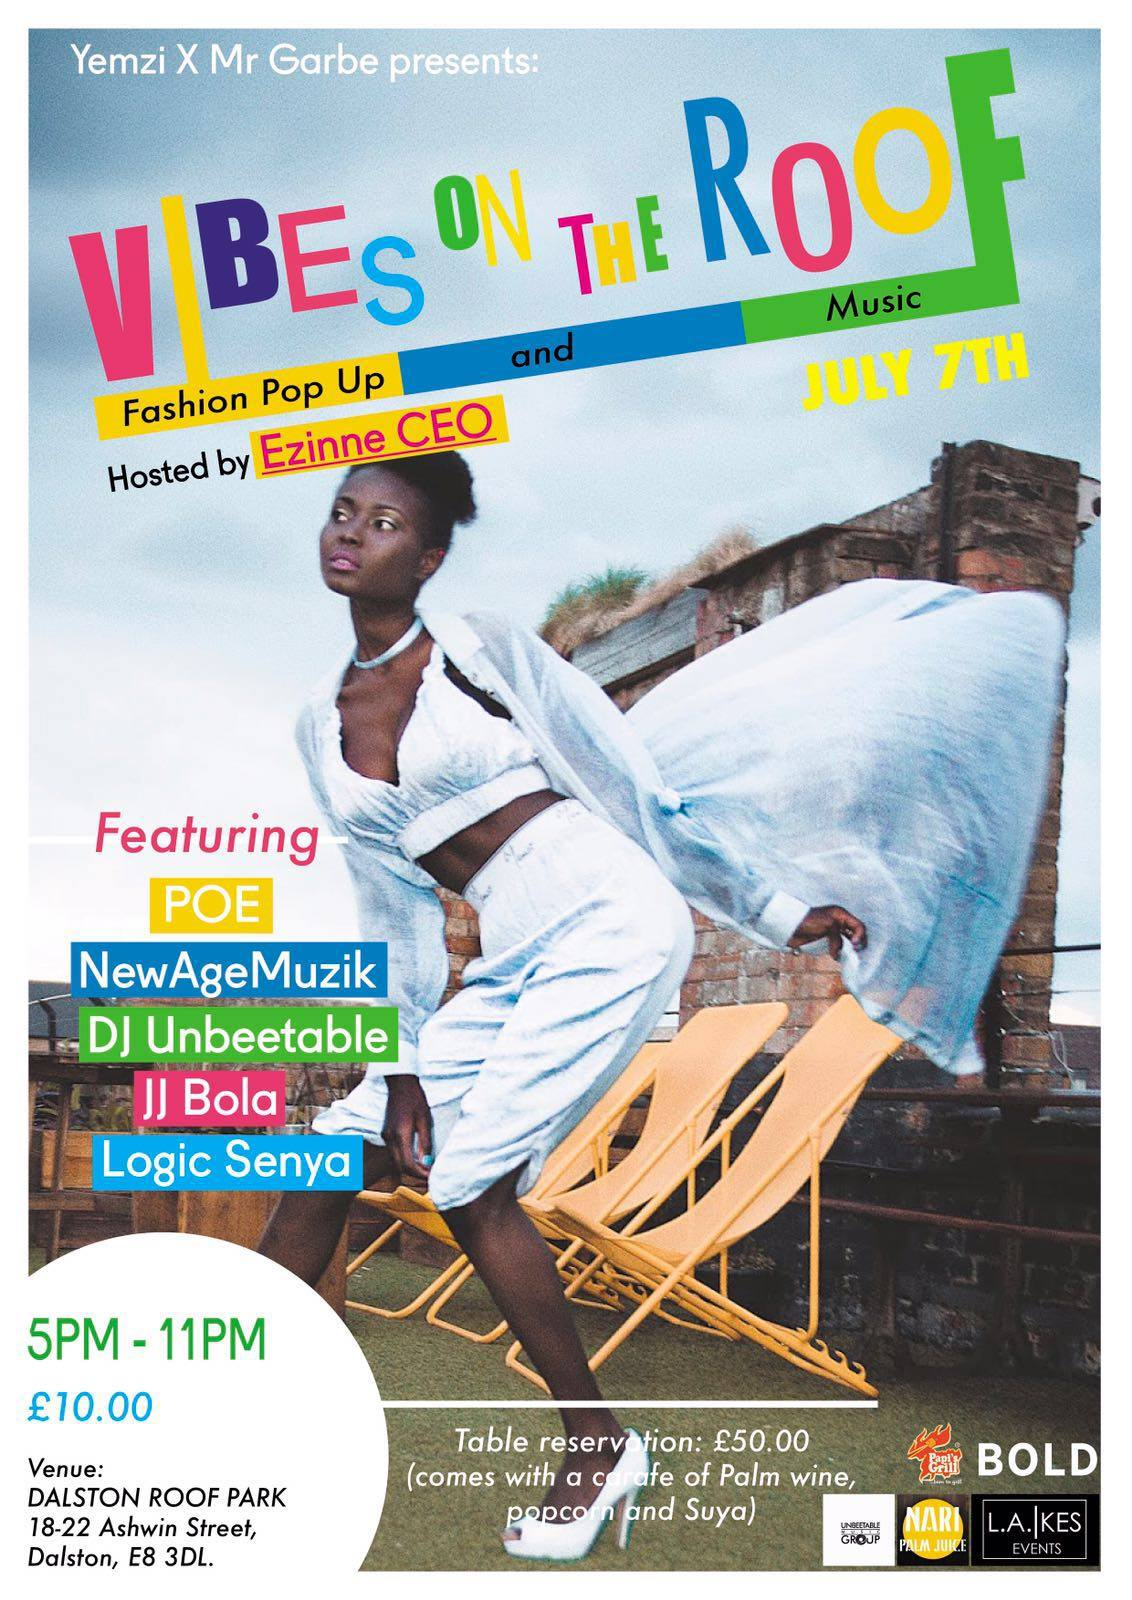 """Vibes On The Roof  - East London's Cultural Secret  Thursday 7th July brings an exciting Afropolitan music and fashion pop up.  Vibes on The Roof #VOTR is set to be an event that provides the perfect fusion between urban East London and the cosmopolitan energy found across African cities - the event curators like to refer to this as """"Afropolitan"""".   FASHION   The evening will feature pieces from Dalston based emerging British-Nigerian fashion designer  Yemzi, with the oppurtunity to make purches.Also a collection from  Mr Garbe -a clothing brand inspired by Africa's rich cultural history as well as its dynamic future and the diaspora.   MUSIC & SPOKEN WORD   VOTR presents an amazing roster of musical and spoken word talent.   POE   The Lagos raised rapper has intellectual punchlines and witty wordplay in his music that will entertain spectators with his new hip hop sound.   JJ Bola   Kinshasa born, London raised writer, poet and educator enlightening the crowd with thoughtful spoken word.   NewAgeMuzik   This new London raised fresh talent group are set to get the crowd pumped with their underground but hip music, the group are rapidly growing a strong following and set to make it big in the coming months.   DJ Unbeetable and  Logic Senya will be spinning tunes throughout the night to keep guests entertained.   FOOD AND DRINK   There will be a cash bar available throughout the night with  Papi's Grill serving food for the duration on the event. Nari Palm Juice will kindly be offering some samples of their new flavours.  The event will take place at Dalston Roof Park, 18 Ashwin St, London E8 3DL nestled in between Hackney's Terraced Homes and framed by the London's famous cityscape from 5pm - 11pm with   last entry at 10.30pm.     A limited number of tickets are now available to purchase  h  ere  ."""